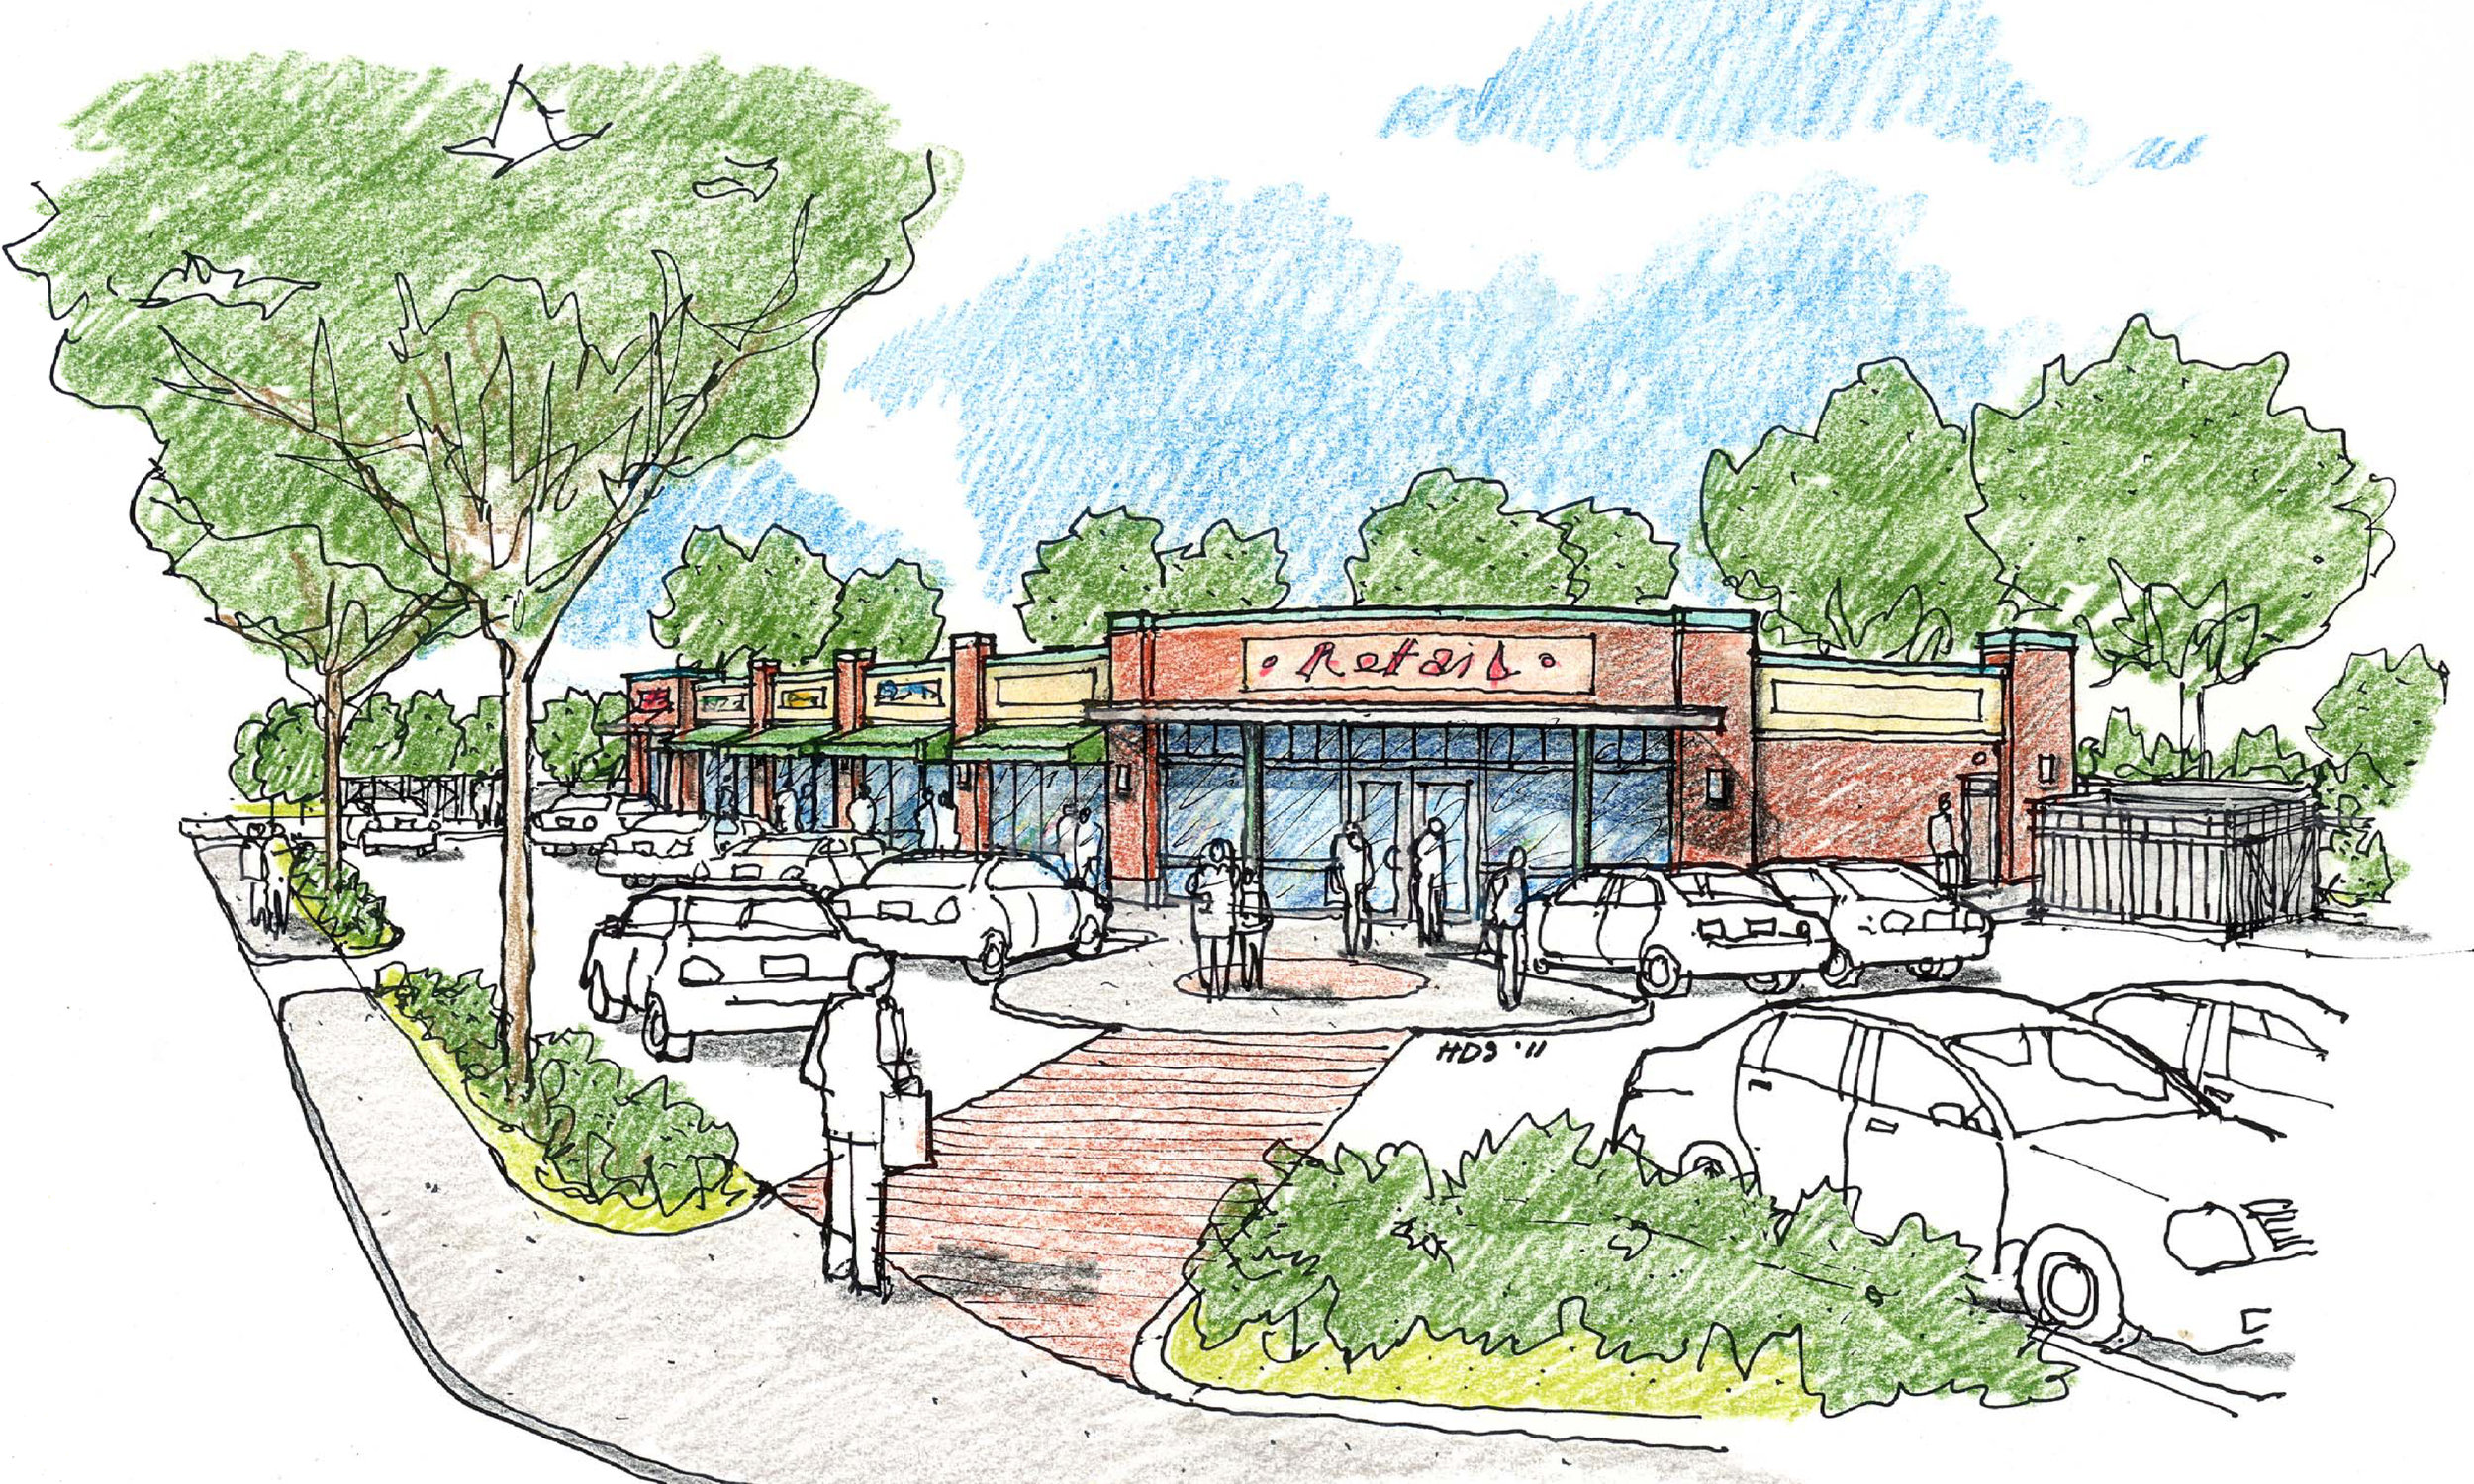 70-Concord-Ave-Perspective-Sketch-HDS-Architecture.jpg